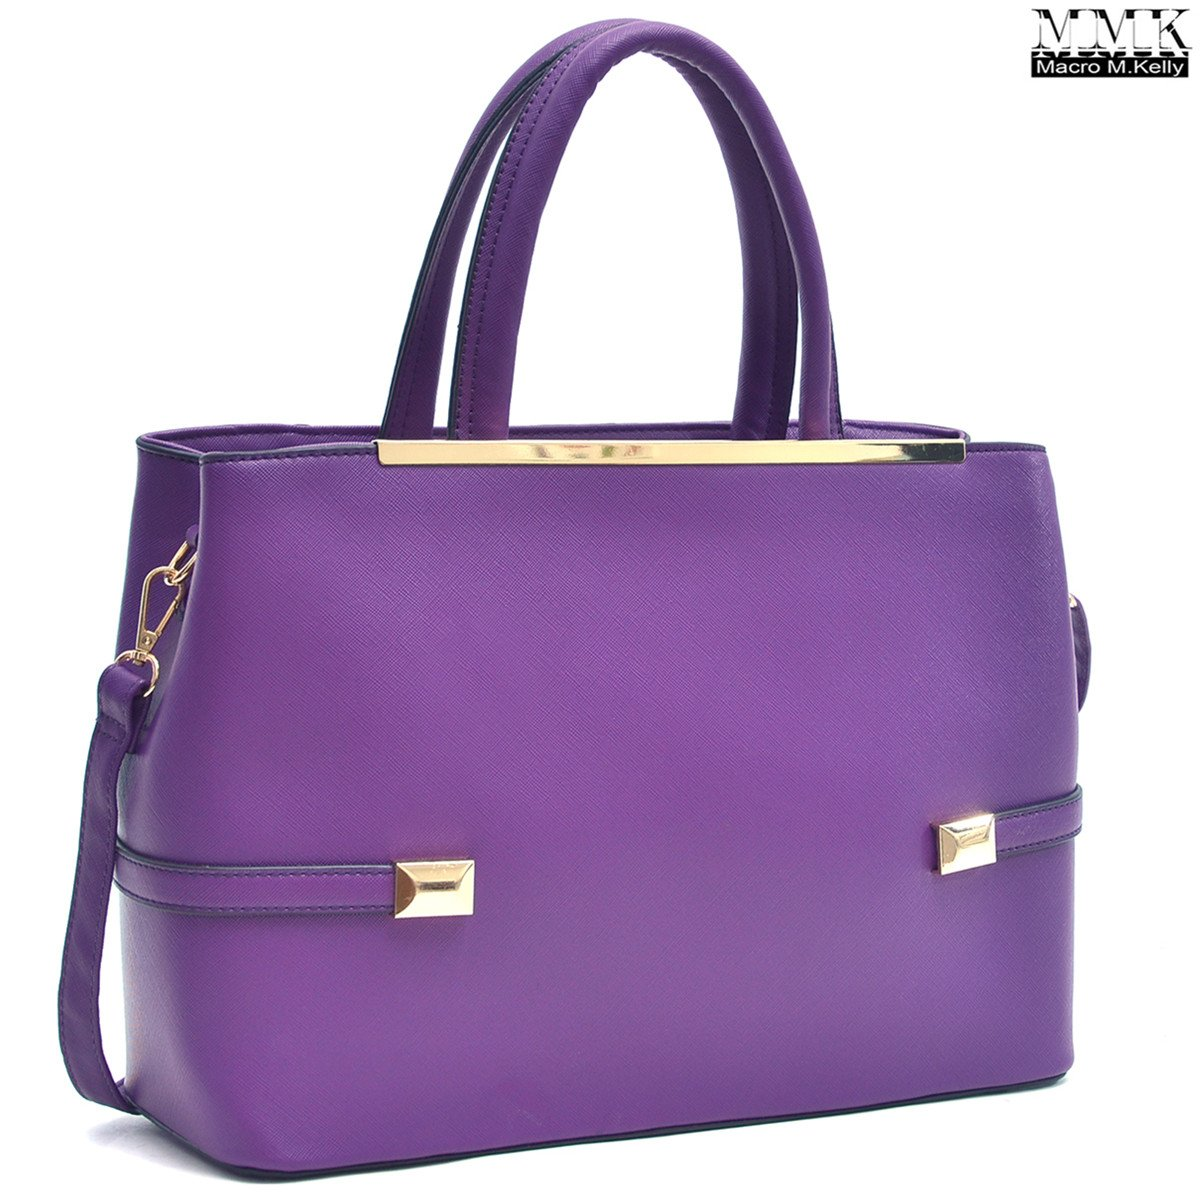 MMK Collection Women Solid Color Large Size PU Leather Simple Concise Business Style(8895N) with Gold Tone Framed Tote Bag Top Handle Bag Handbag with Shoulder Strap (Purple) by Marco M. Kelly